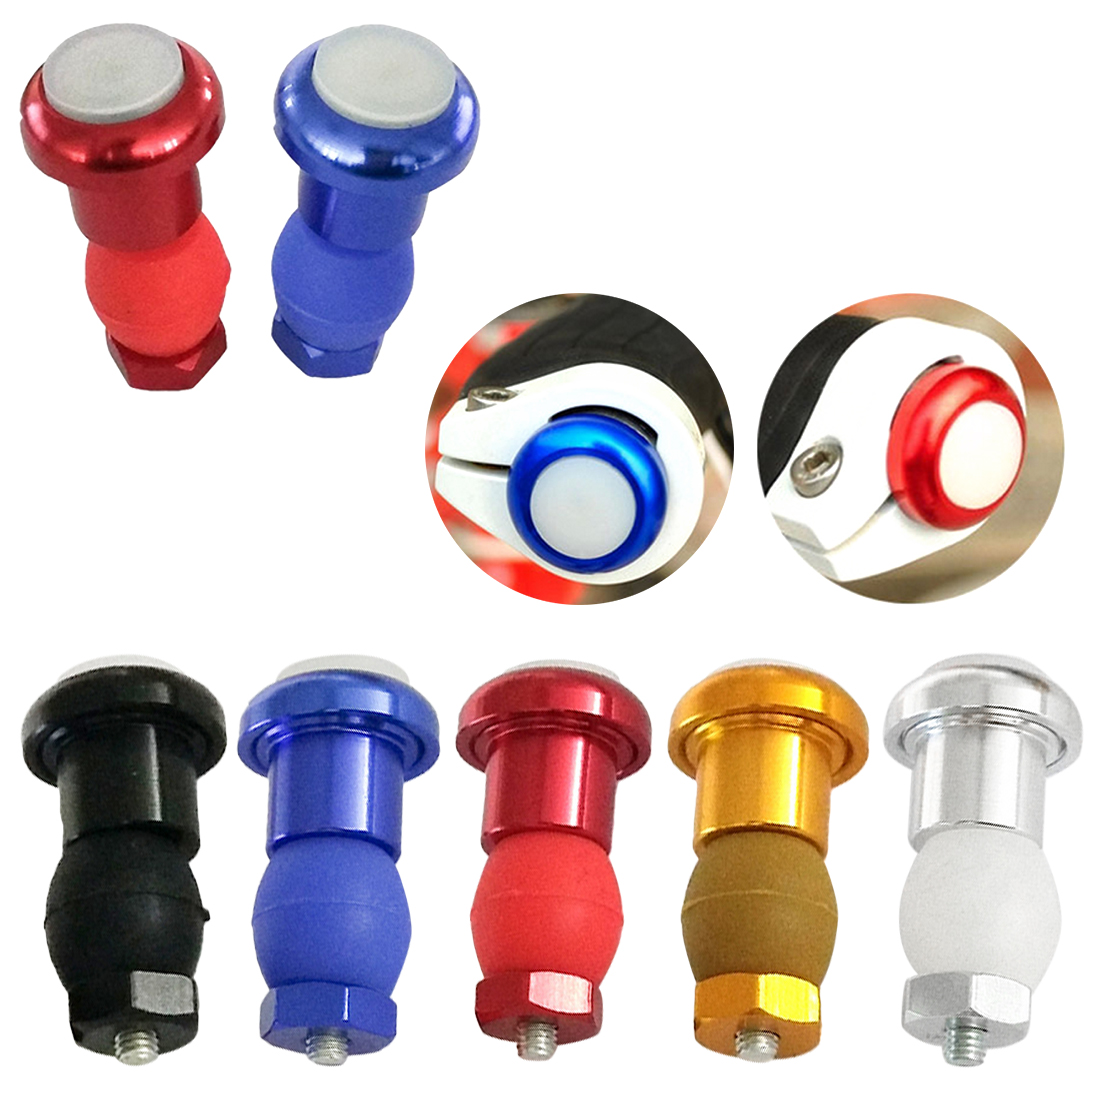 1 Pcs Bicycle Bike Light Handlebar End Caps Handlebars 3 Modes Plugs LED Blinker Lights Warning Taillights Bicycle Accessories